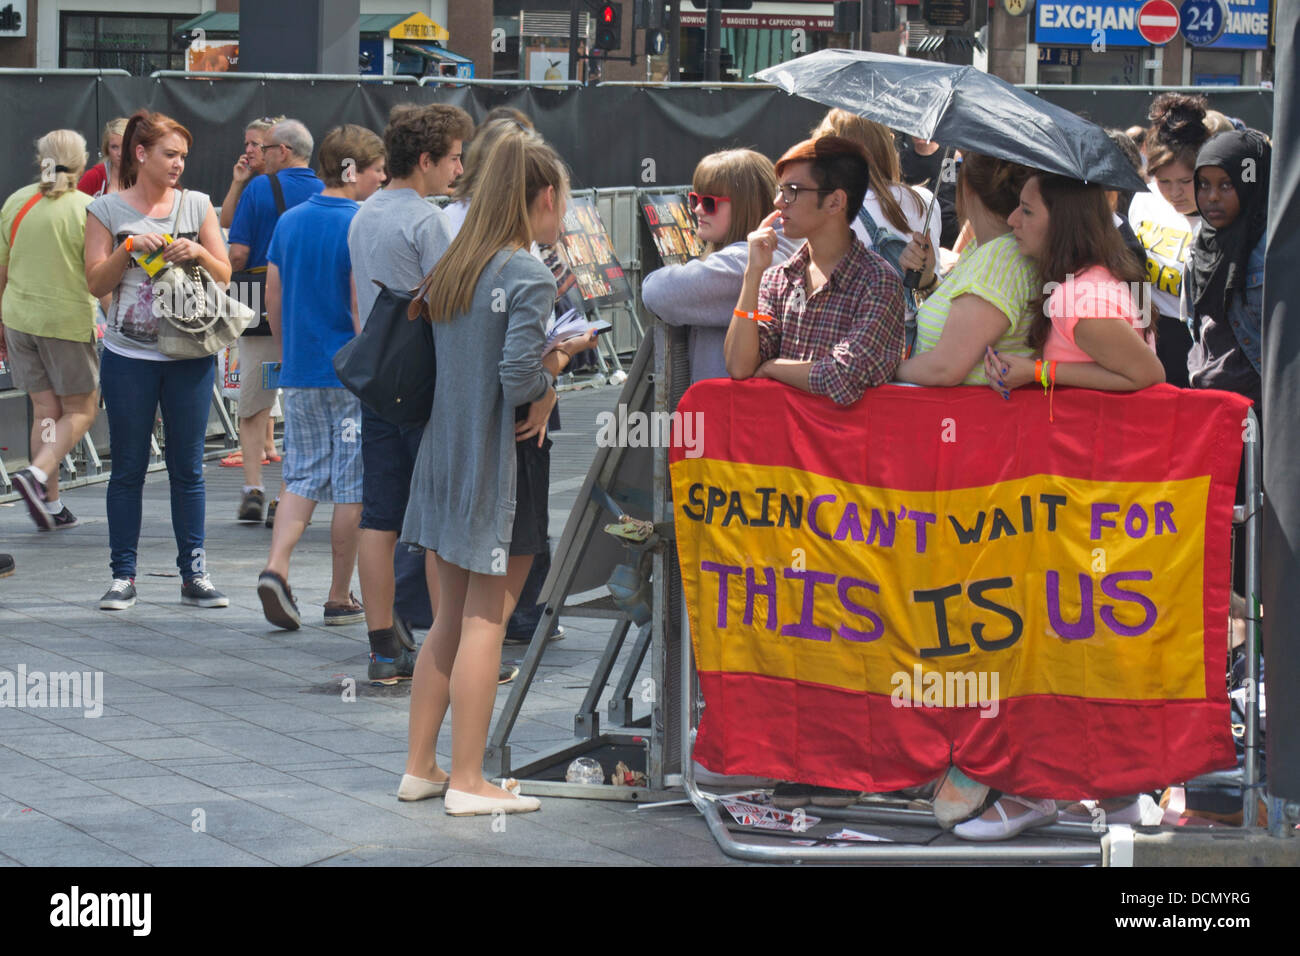 London, UK. 20th Aug, 2013. One Direction fans wait outside a Leicester Square Cinema for the Premier of their movie. - Stock Image